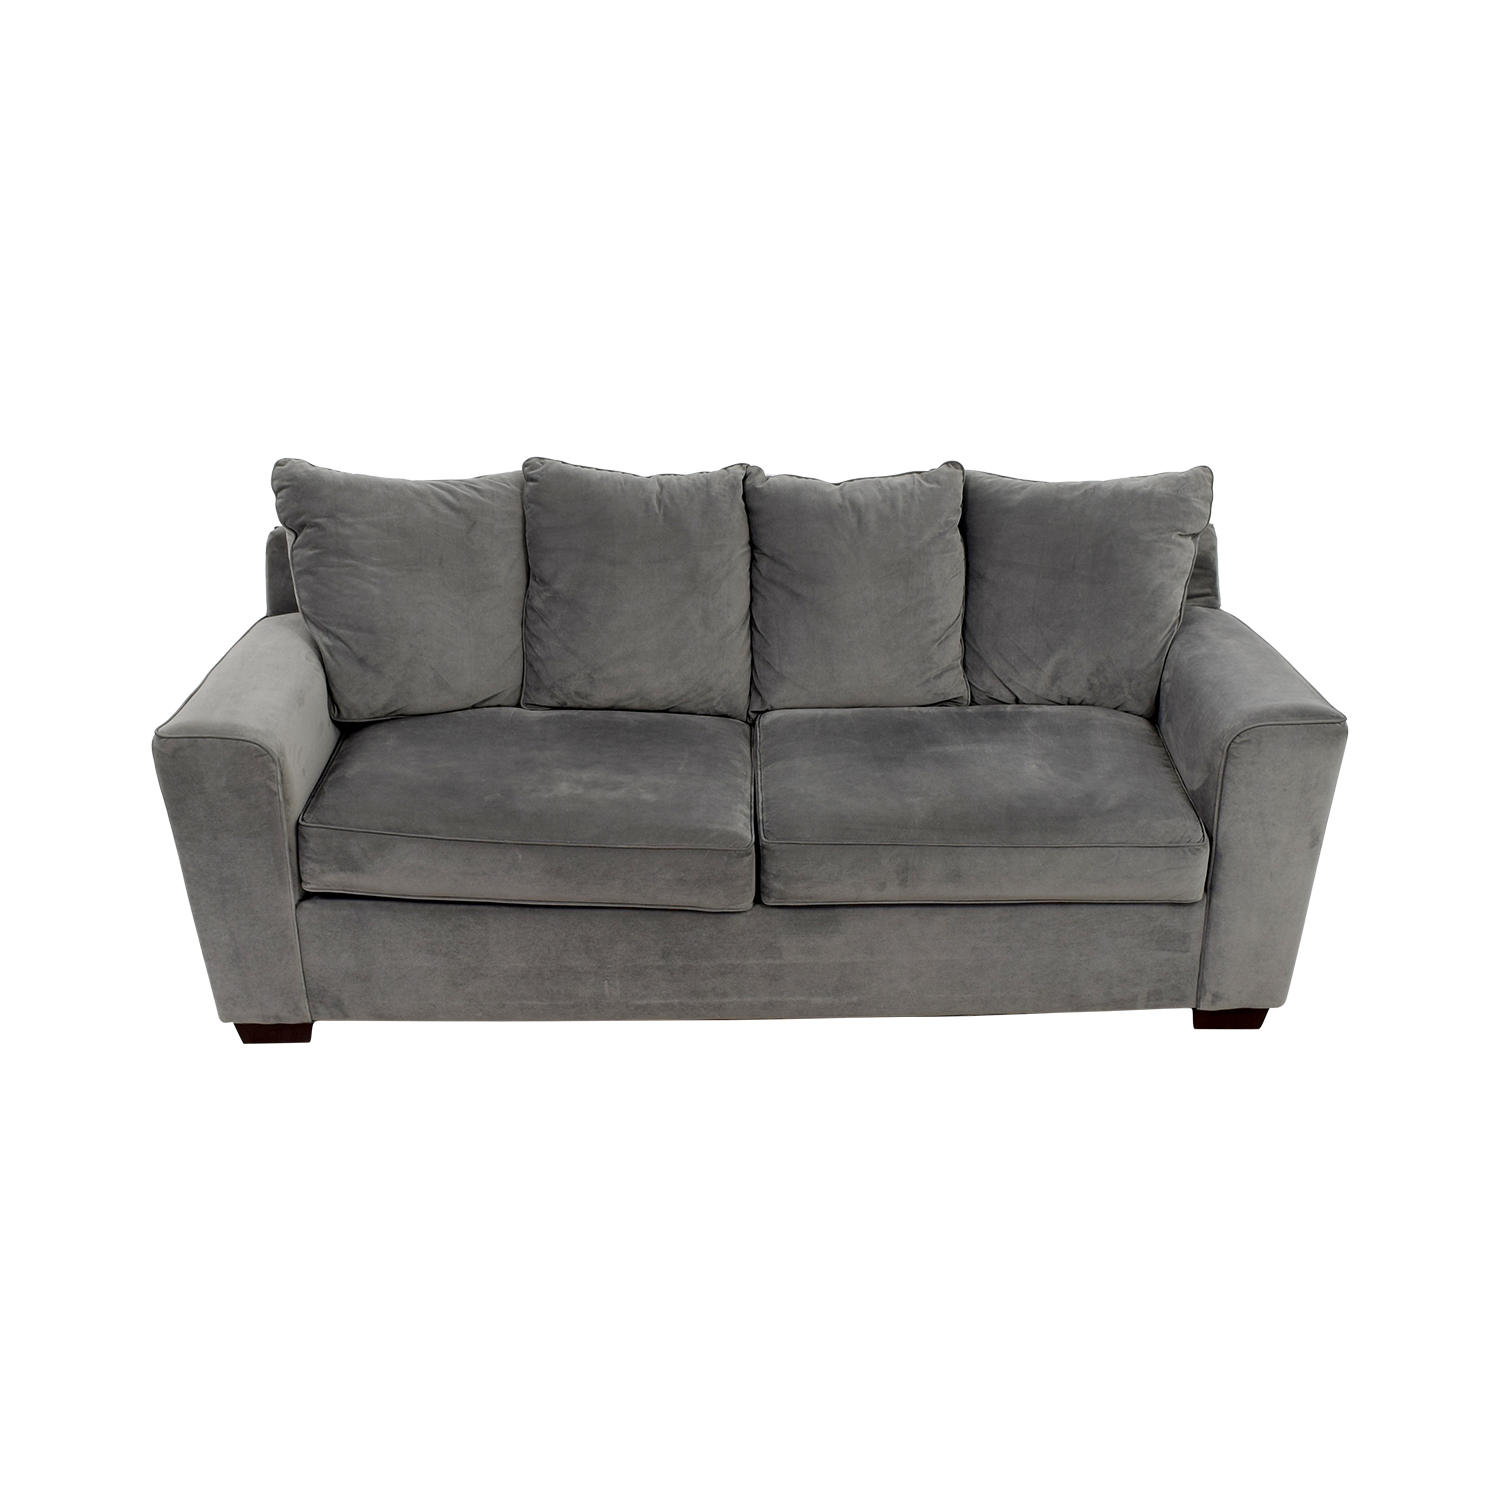 shop Jennifer Convertible Microfiber Sofa Jennifer Convertible Sofas